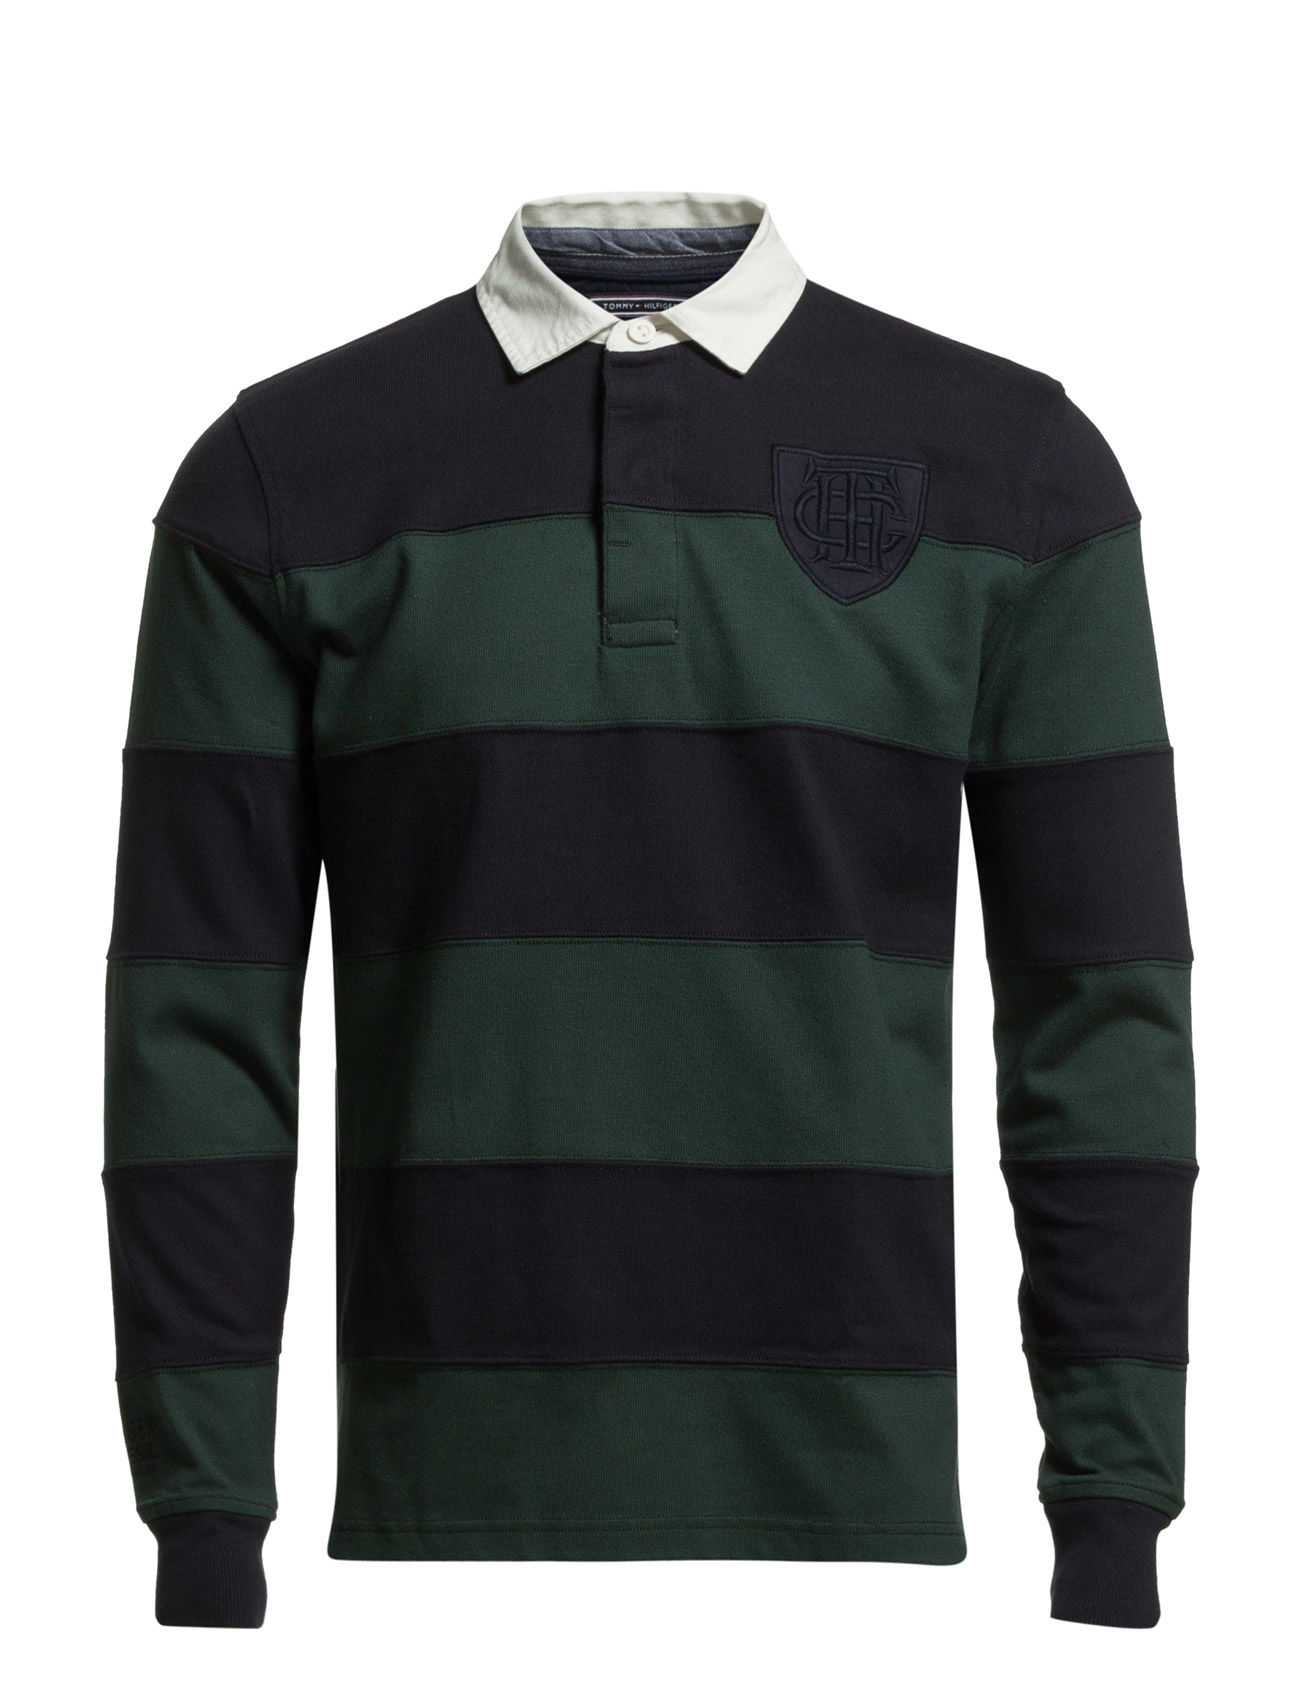 Damian Stp Rugby L/S Vf